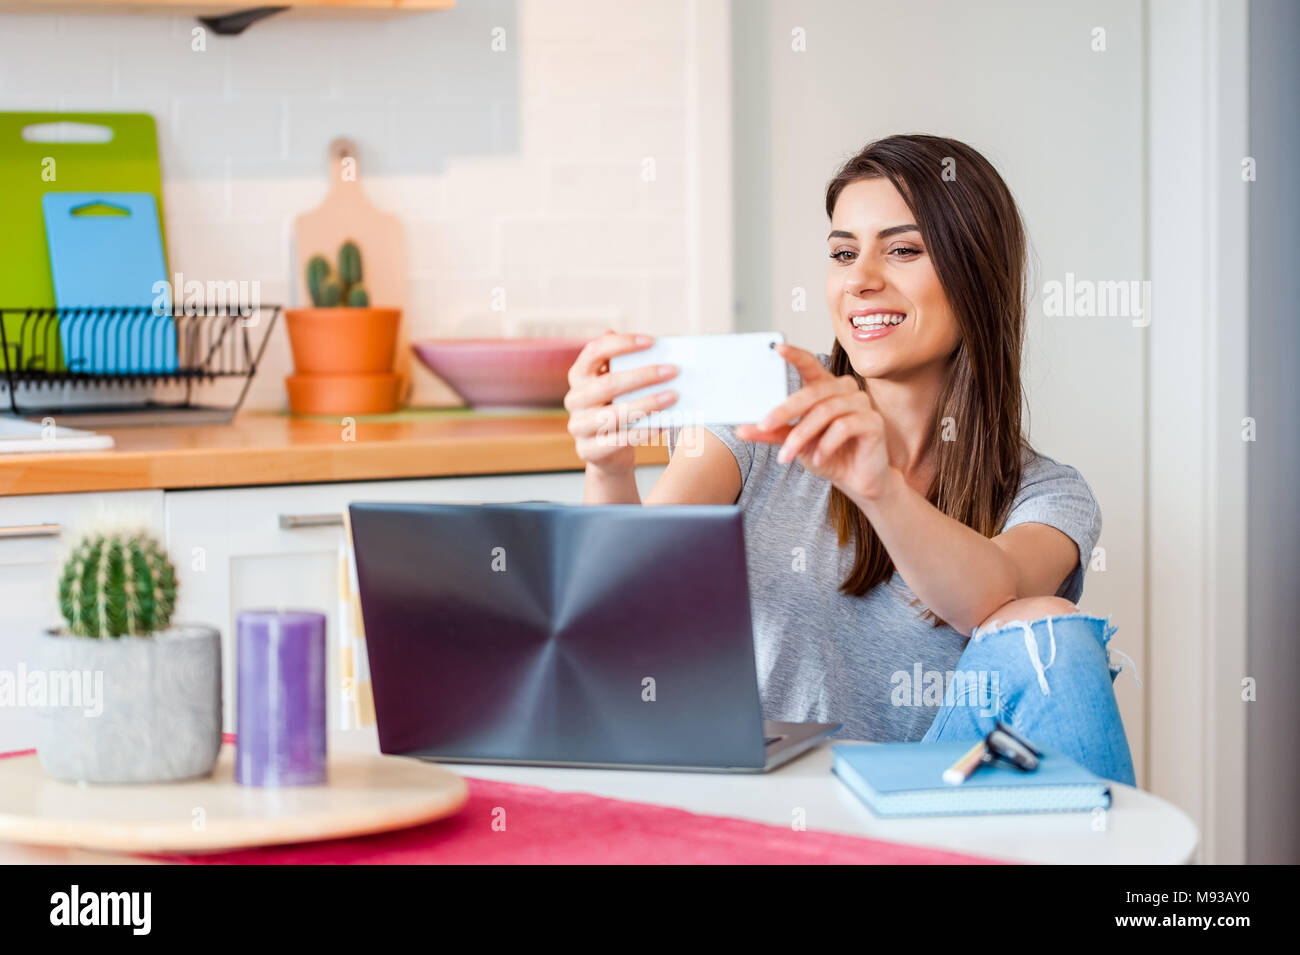 Young woman sitting on chair at table on laptop and taking a selfportrait in a modern decorated home interior. - Stock Image